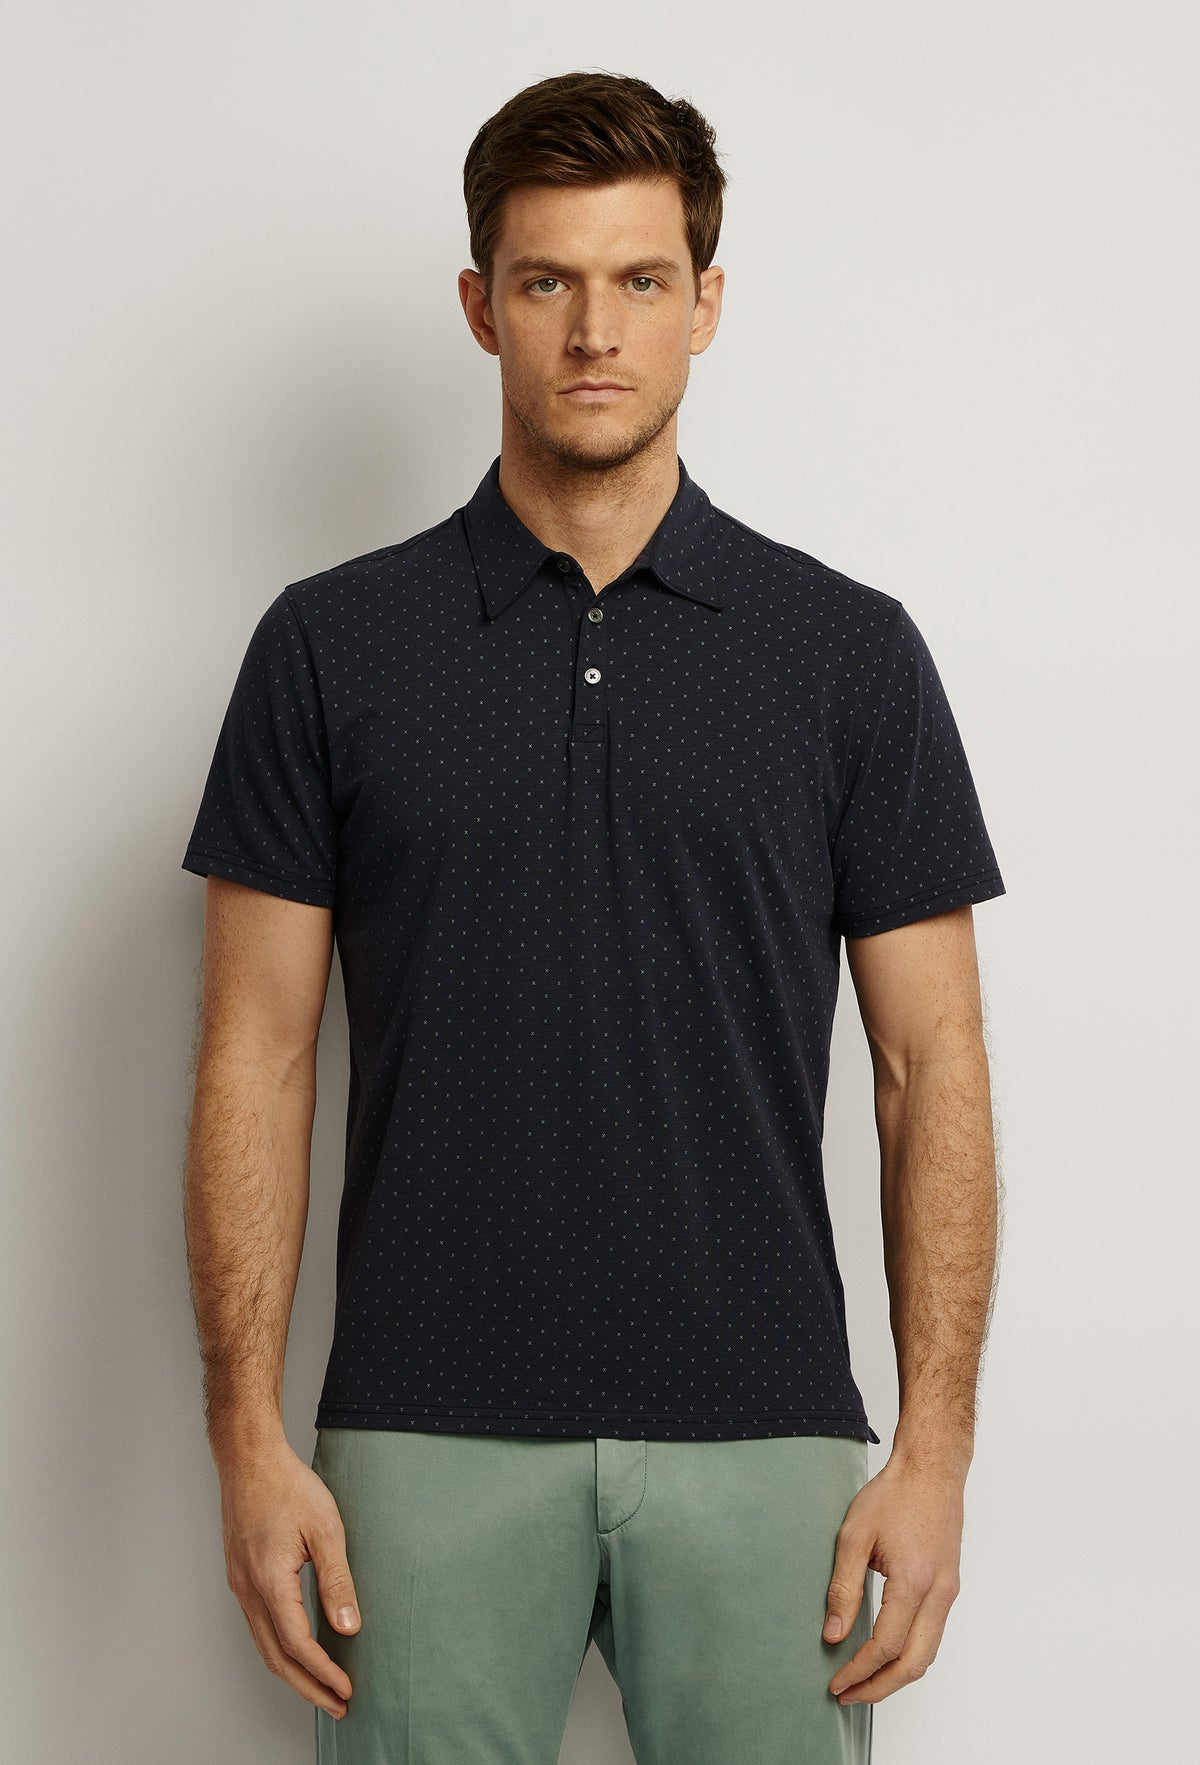 ZACHARY-PRELL-Bayville-PolosModern-Menswear-New-Dress-Code